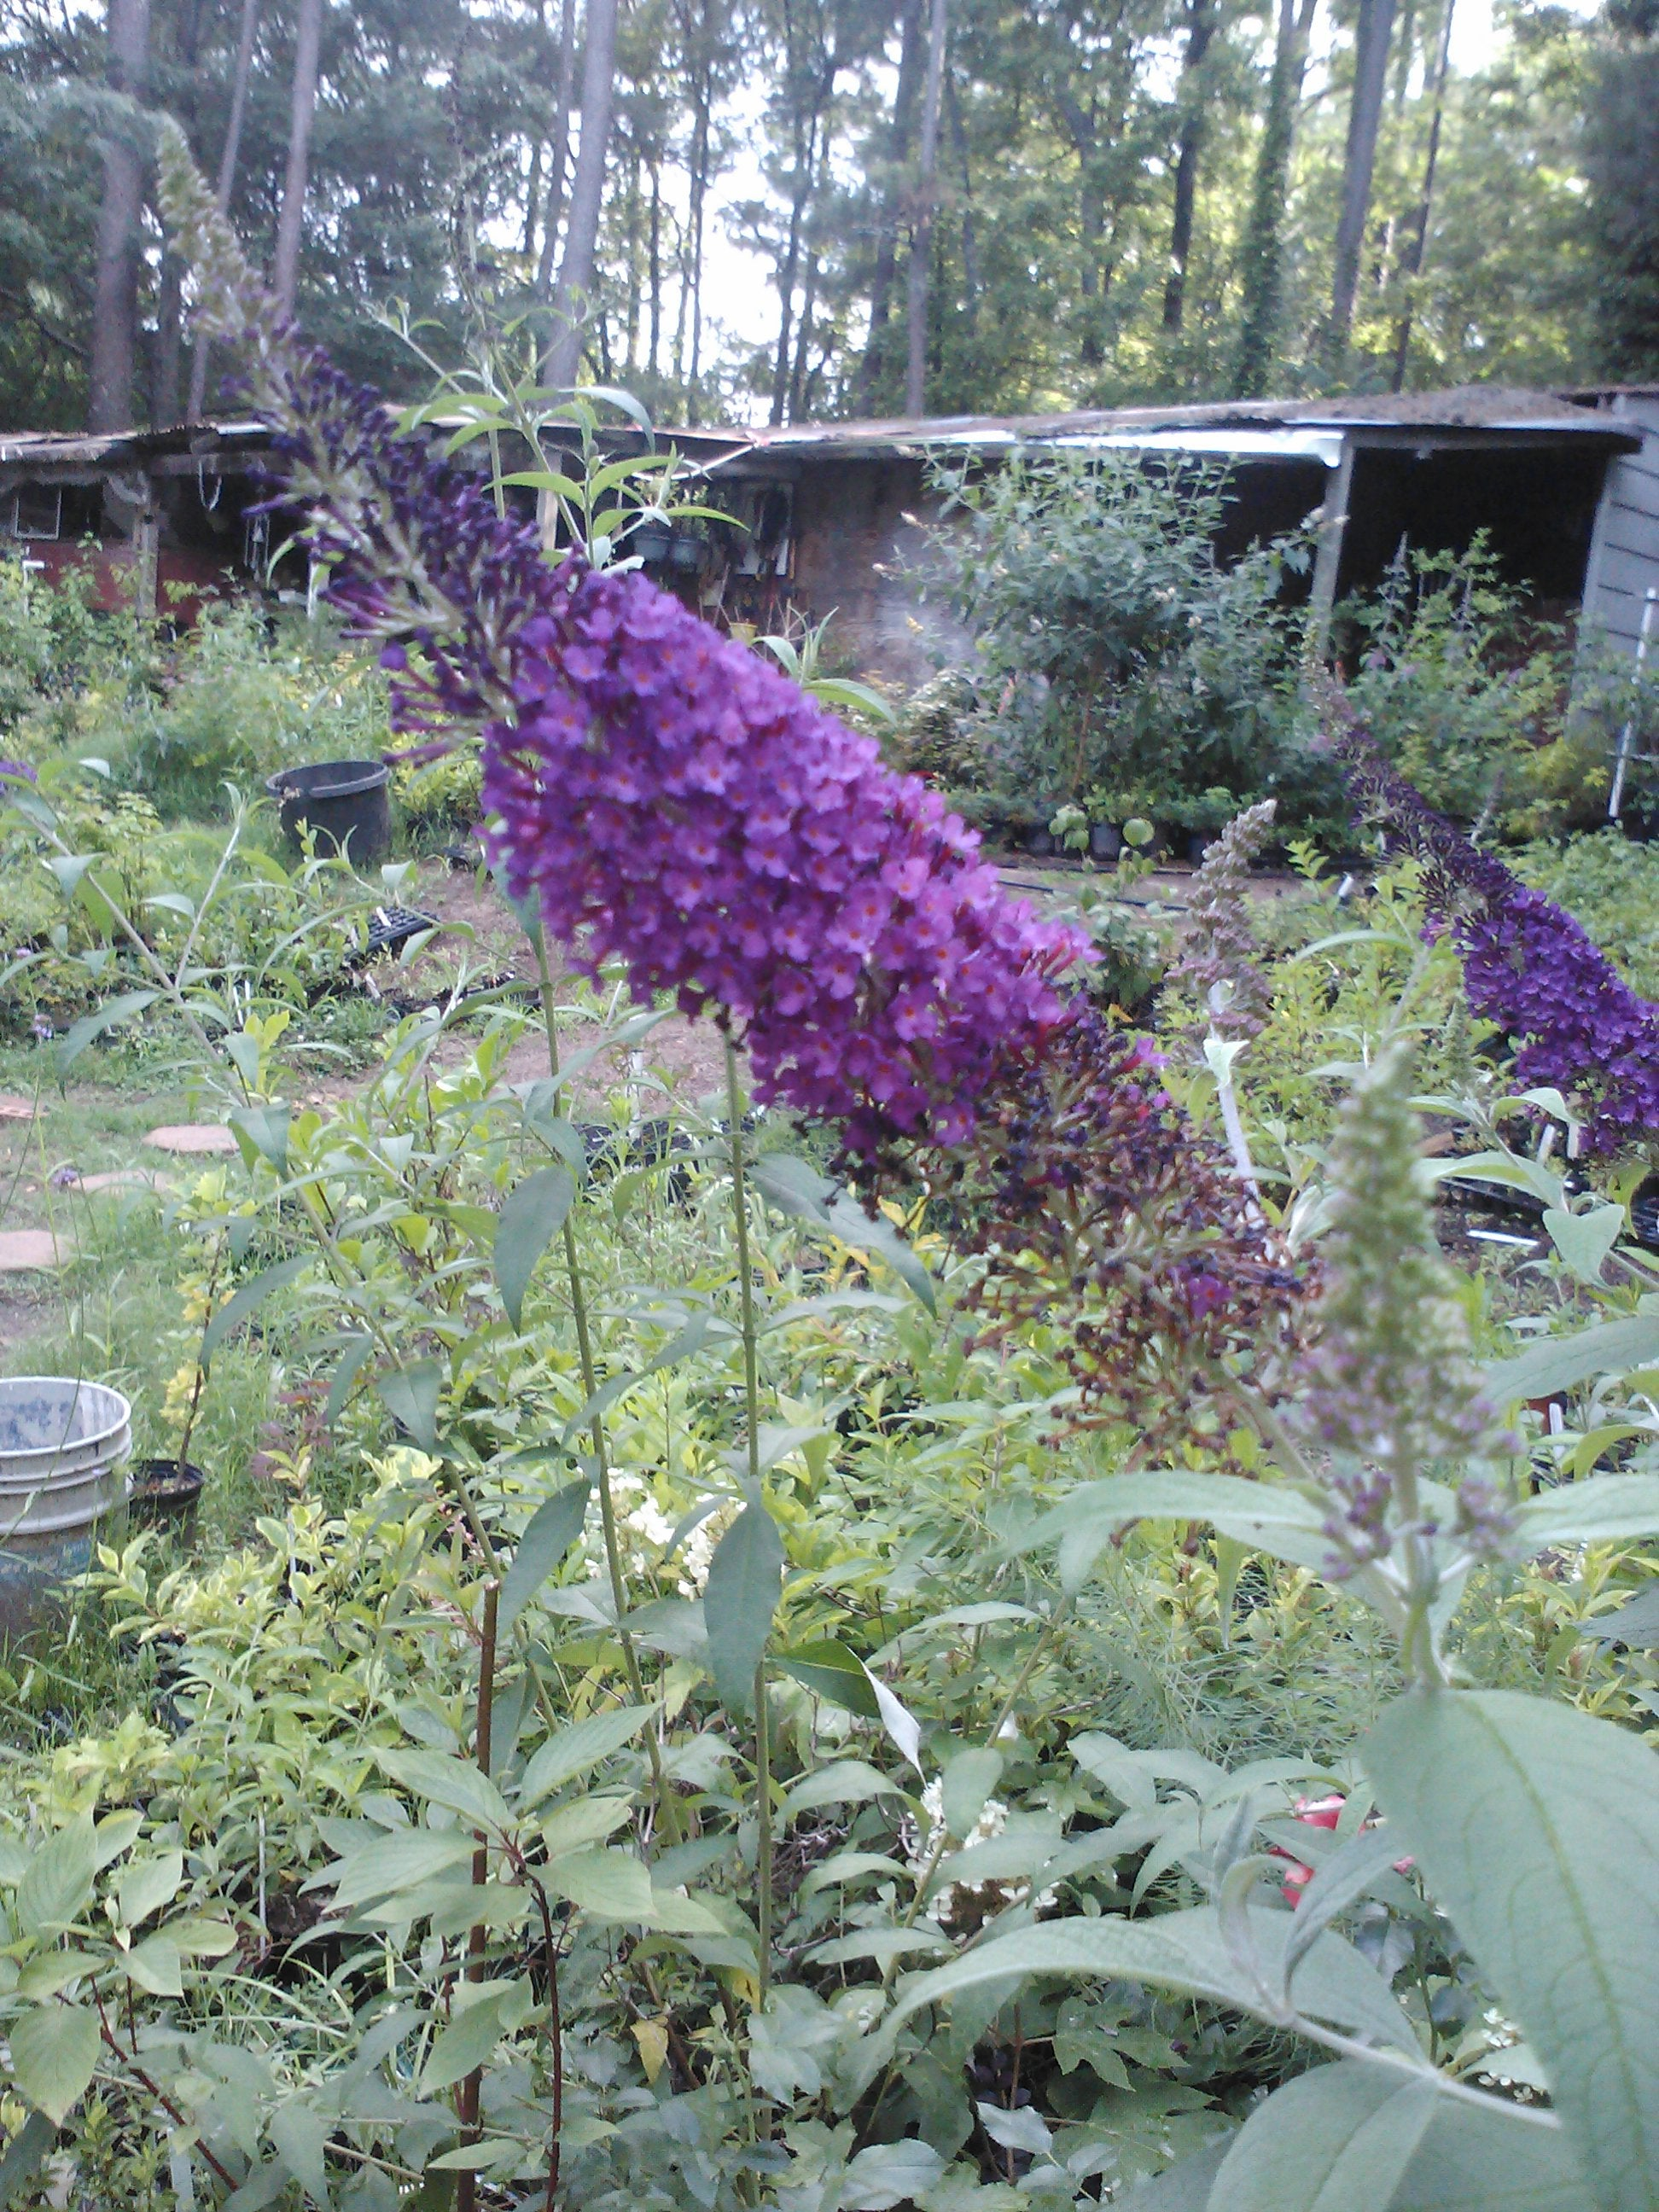 (3 Gallon) Blue Chip Jr. Butterfly Bush (Low and Behold Variety) Stunning Miniature Butterfly Shrub, Only 2' tall /wide Produces Fragrant Bluish Purple Blooms. Very Easy To Grow!